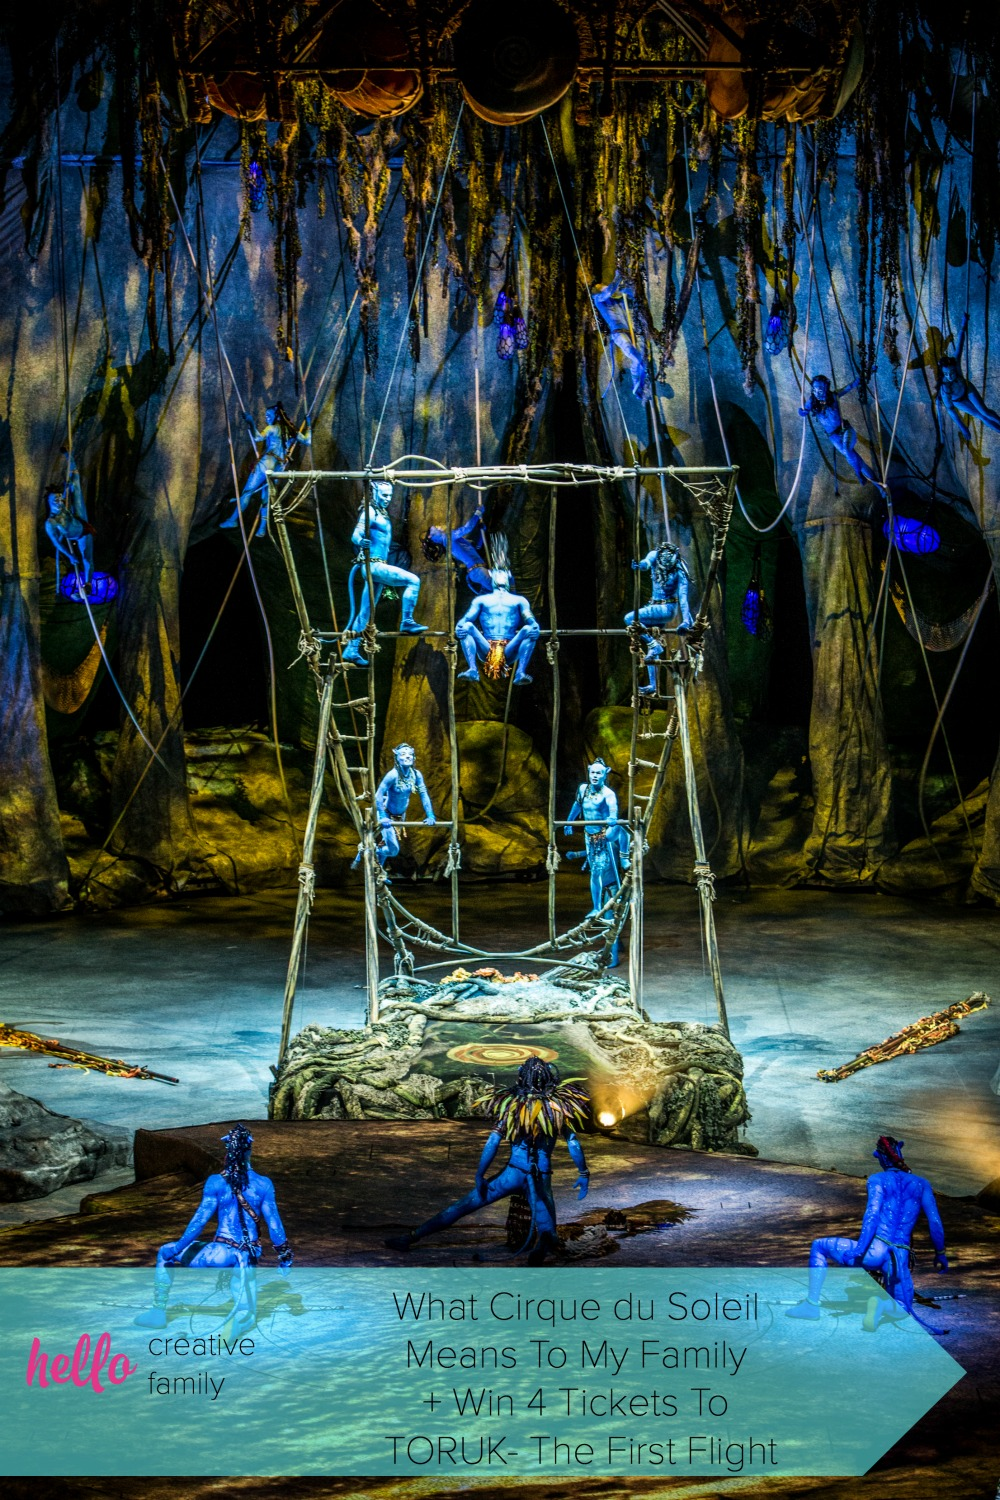 what-cirque-du-soleil-means-to-my-family-win-4-tickets-to-toruk-the-first-flight